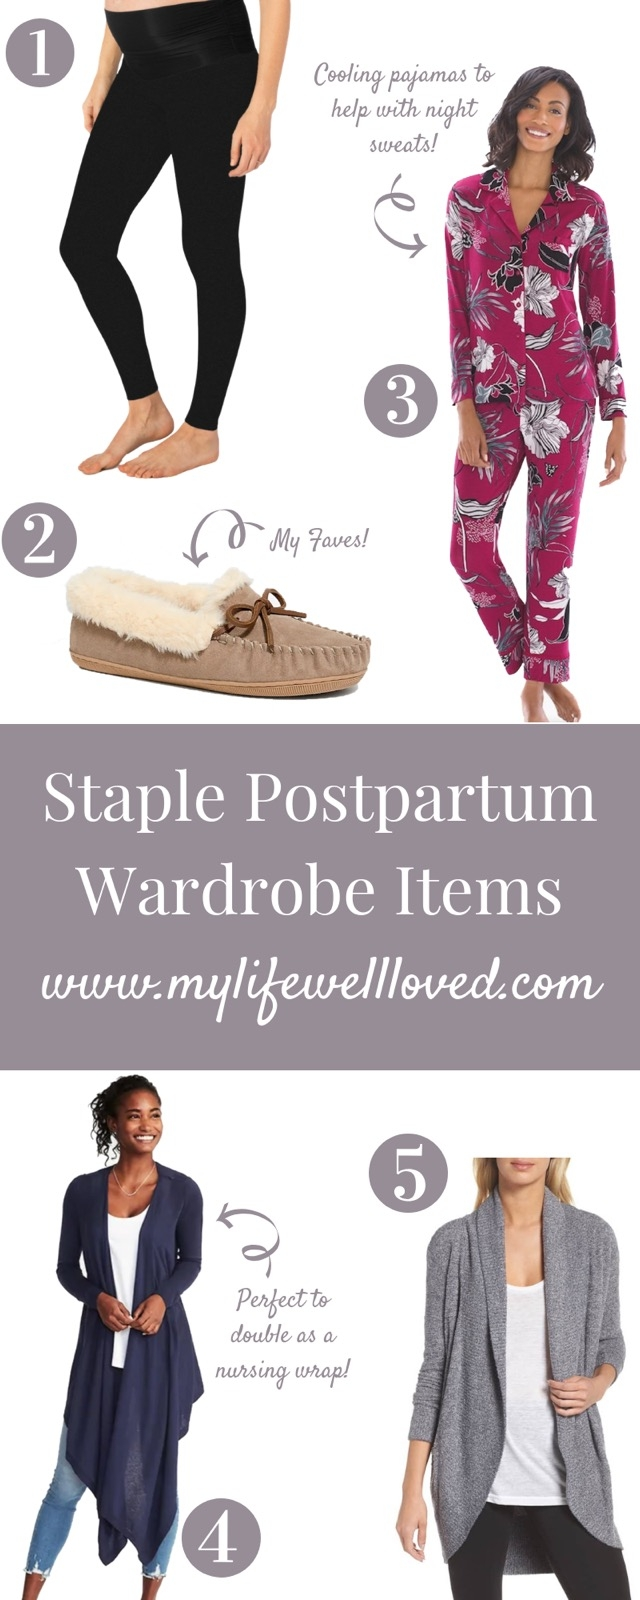 Postpartum outfit to wear home from hospital or after baby // #postpartum